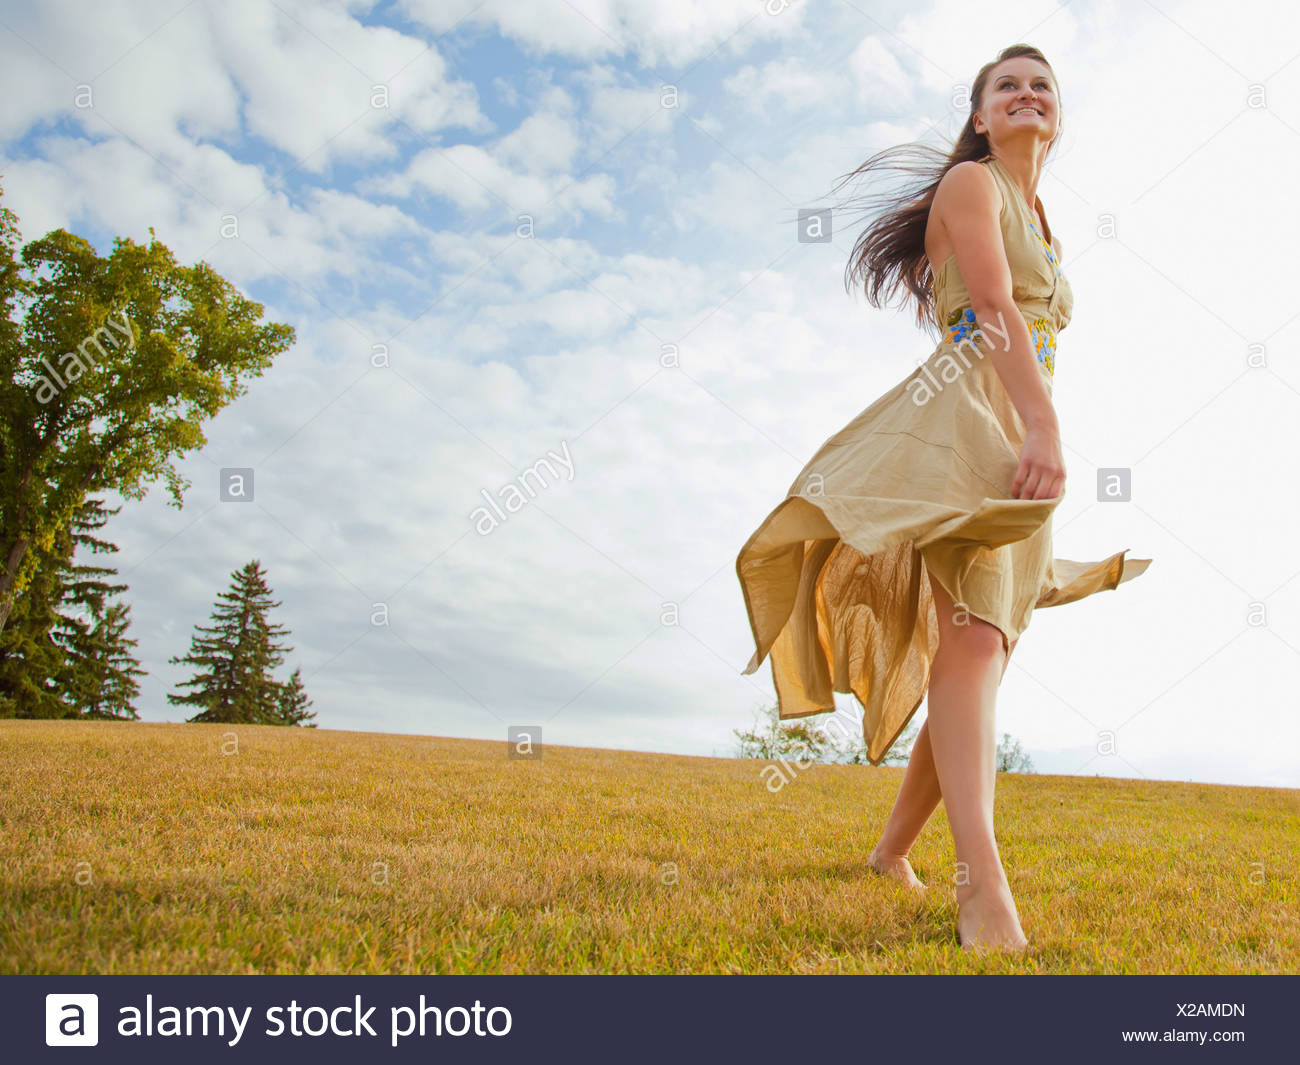 c450d887021a5 Young Woman Dancing In The Park With A Flowing Dress; Edmonton, Alberta,  Canada